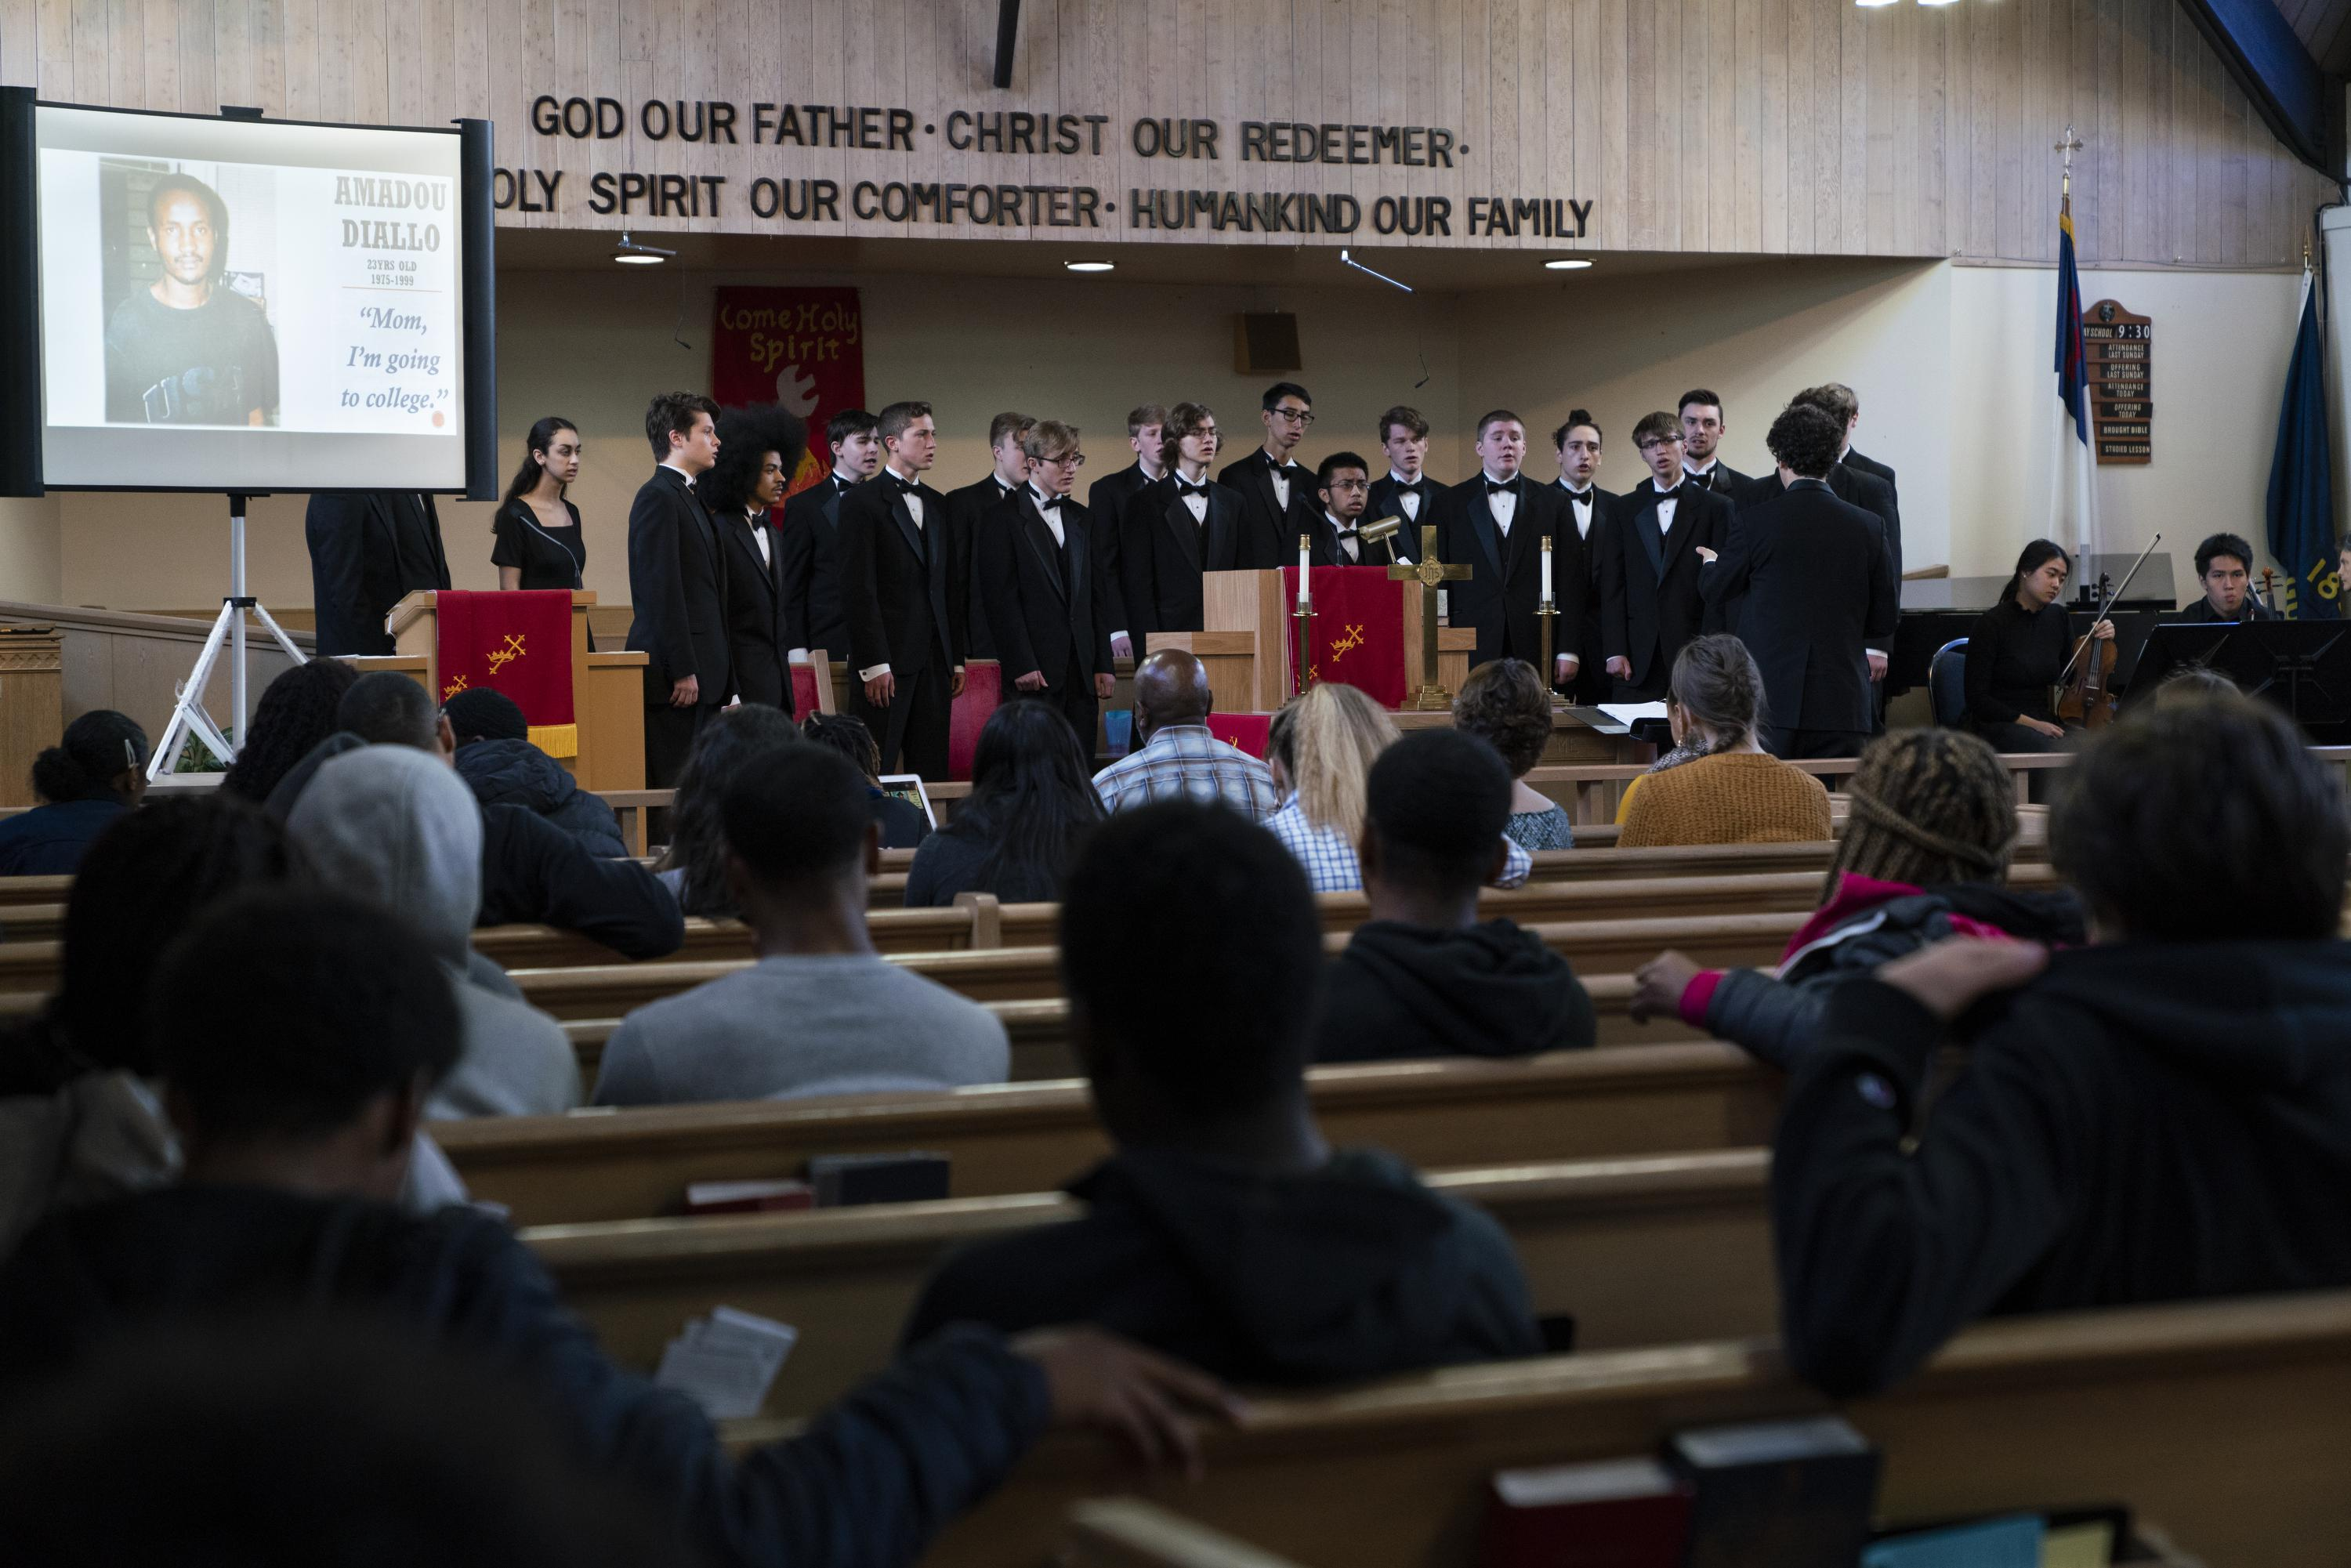 PORTLAND, OR - APRIL 26: The Camas High School Mens Choir performs Seven Last Words for students from Roosevelt and Jefferson High Schools on April 26, 2019, at the Bethel AME Church in North Portland, Oregon.